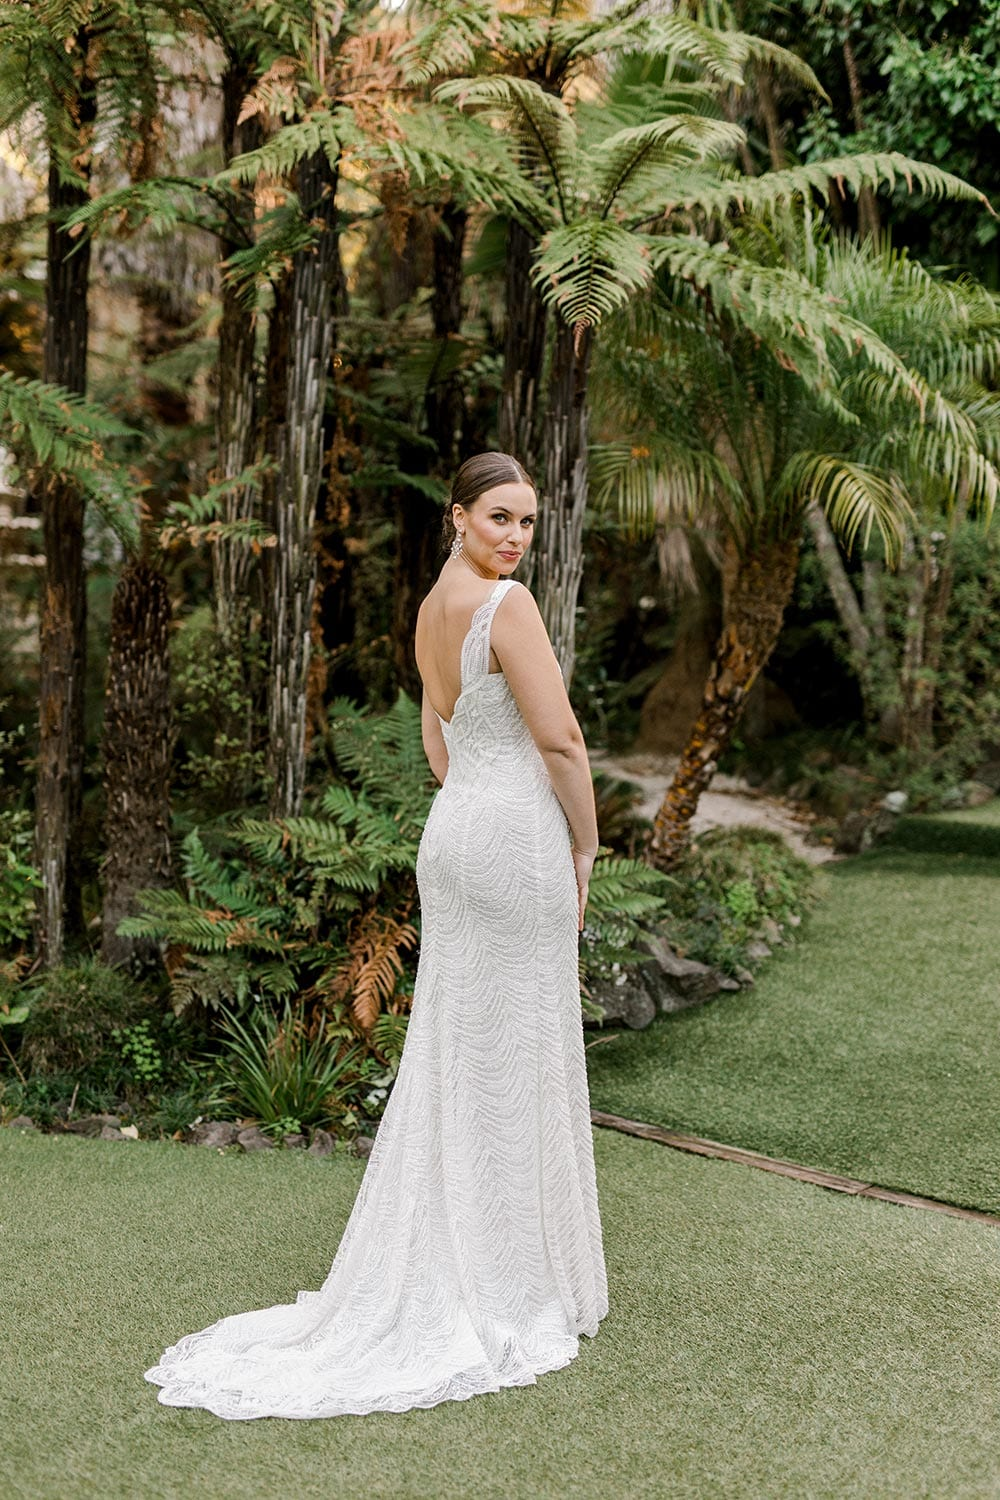 Juliette Wedding Dress from Vinka Design. Flattering stretch fitted lace wedding dress with beautiful ivory rich beading. Structured bodice provides support while remaining effortless to wear. Full length landscape of dress from behind with train flowing. Photographed at Tui Hills.